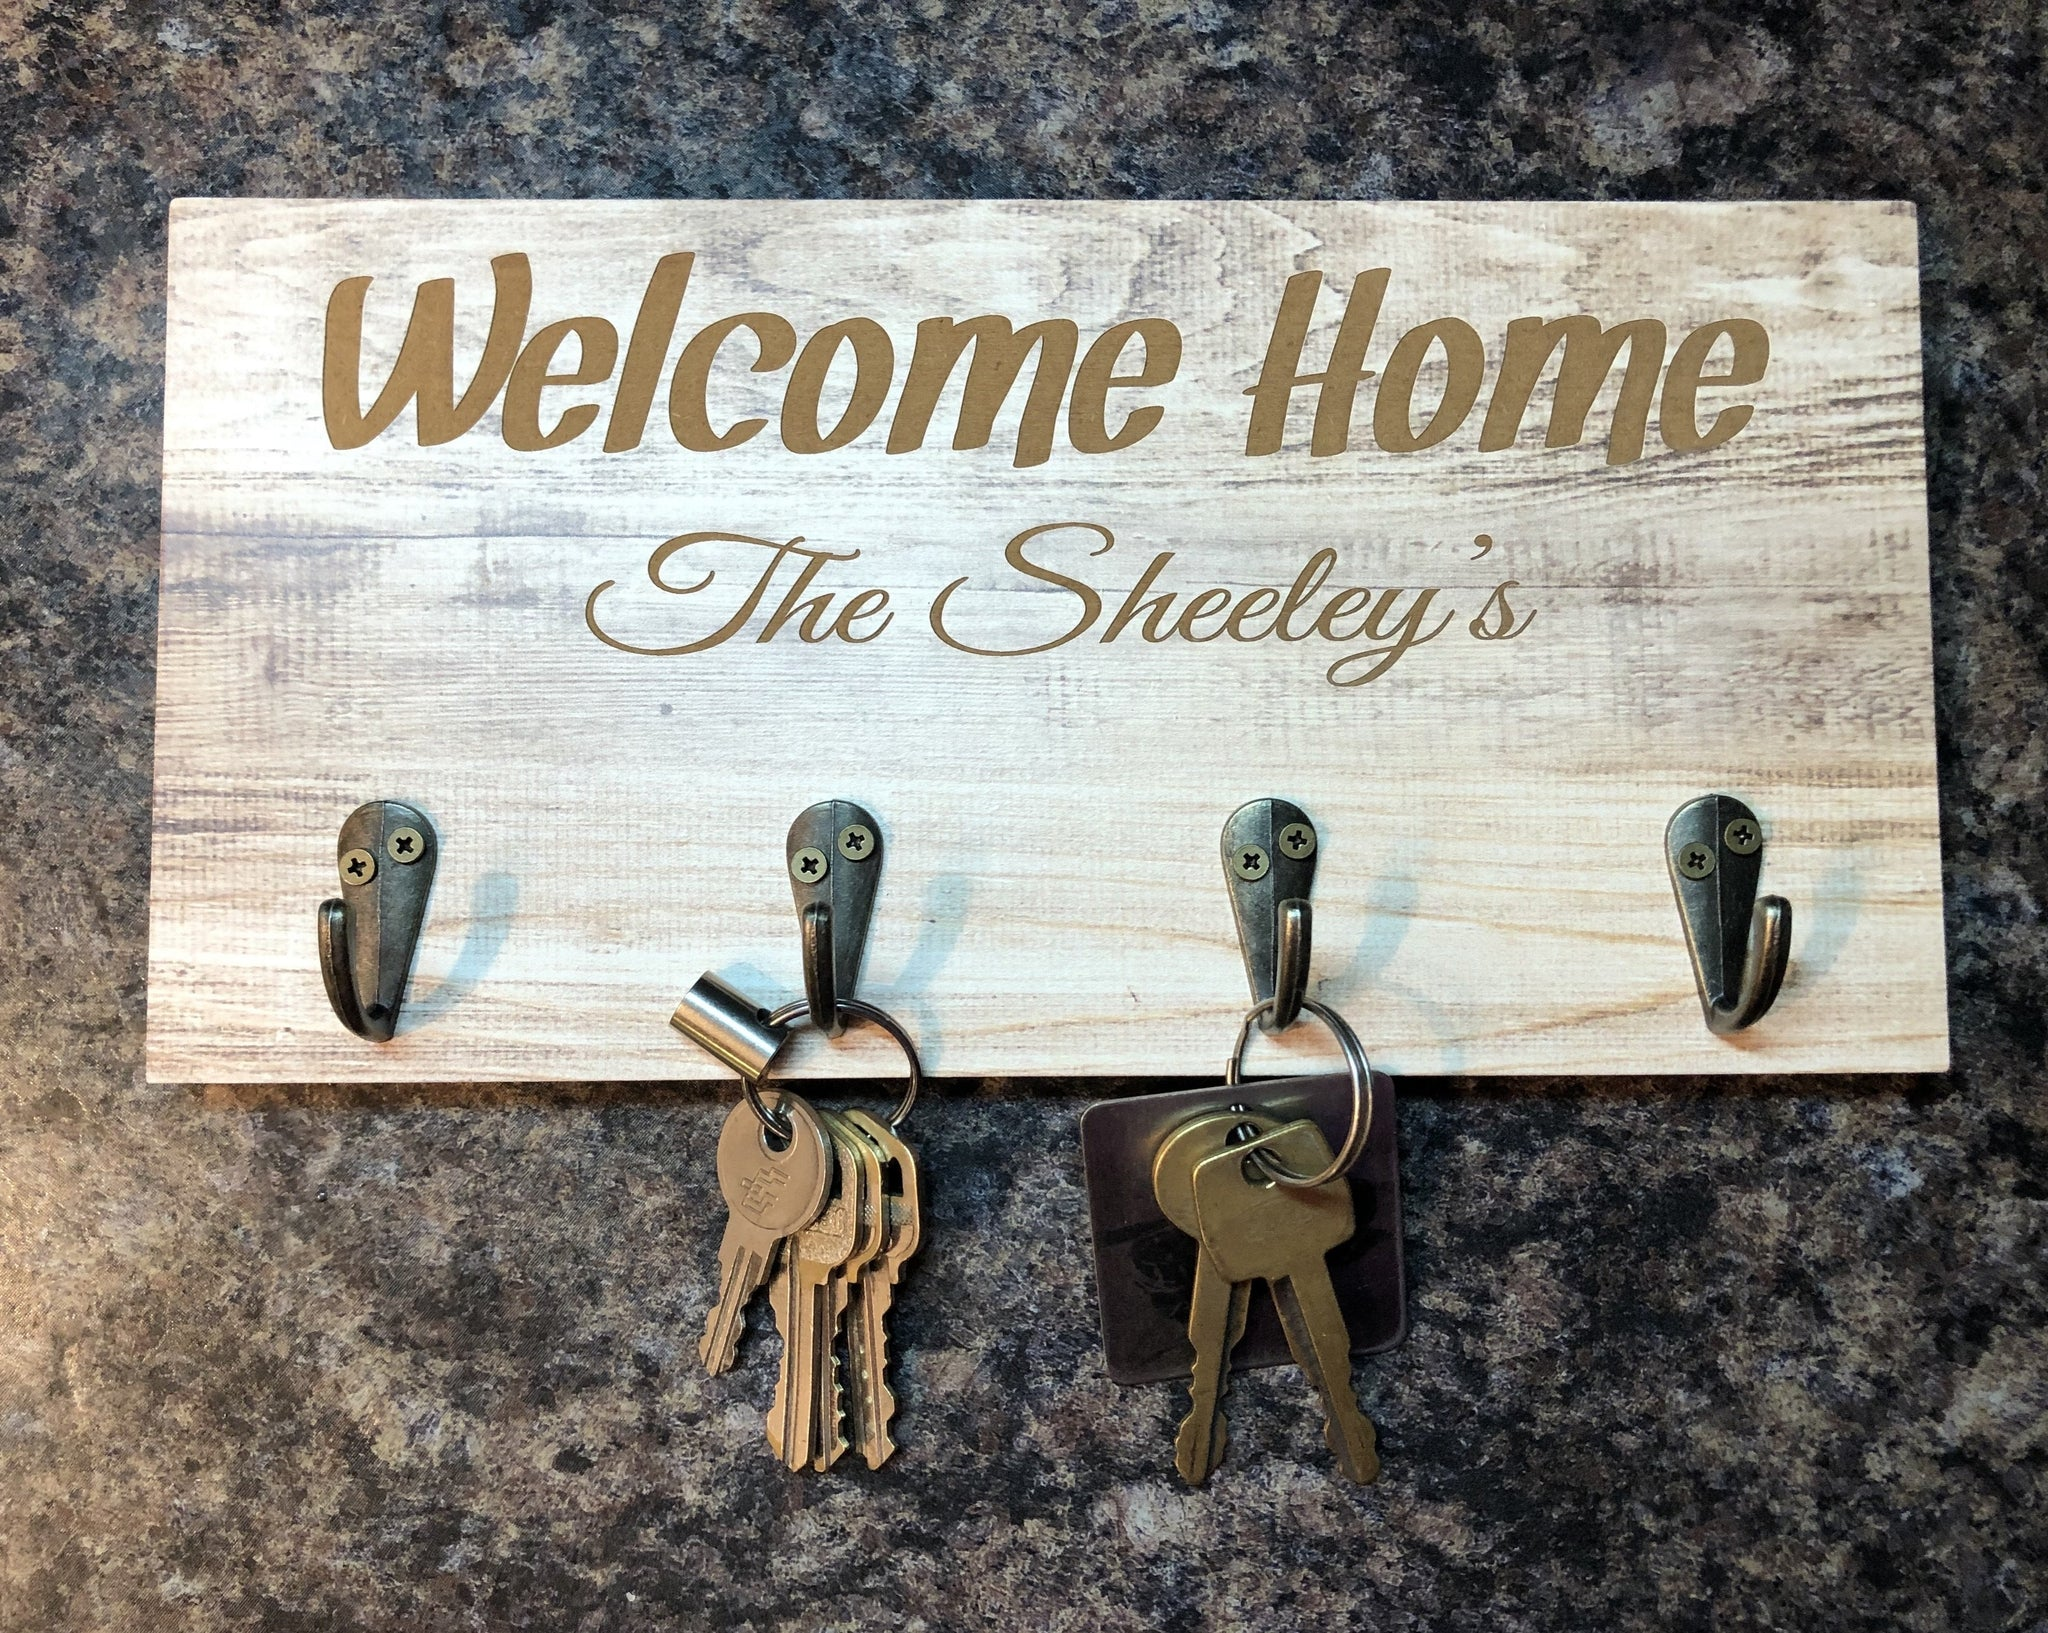 Personalized Engraved Keyholder. Realtor Gift. Rustic Keyholder For The Entryway. - C & A Engraving and Gifts